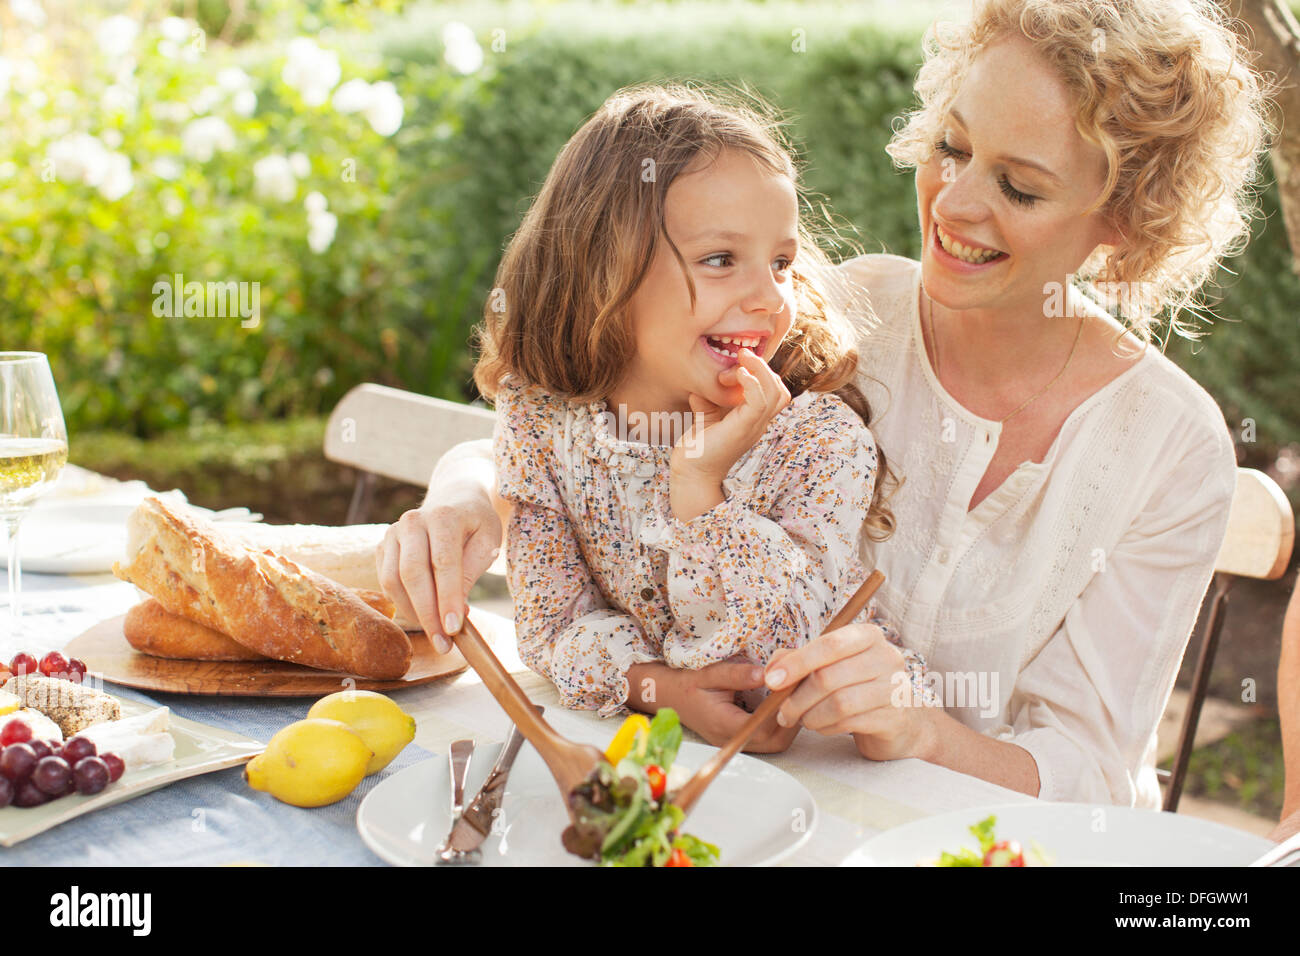 Mother and Daughter eating in garden Photo Stock